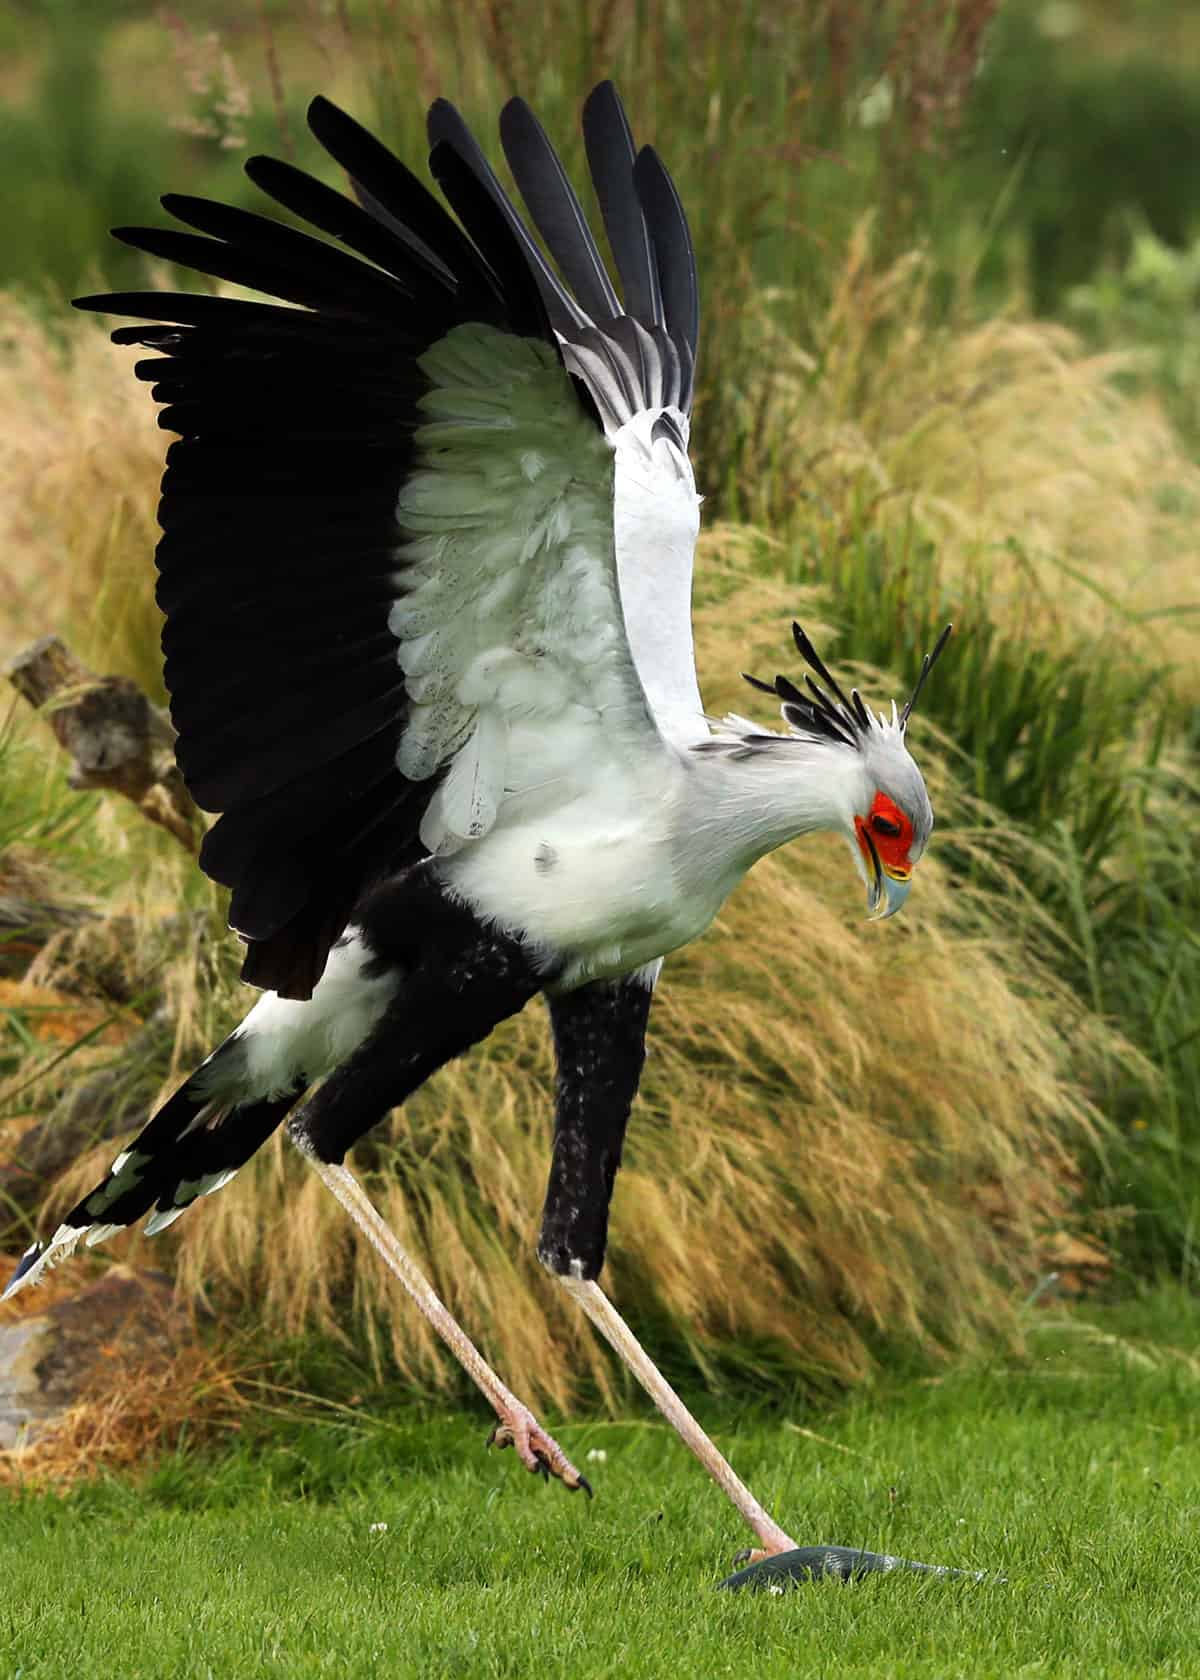 Secretary bird kicking snake